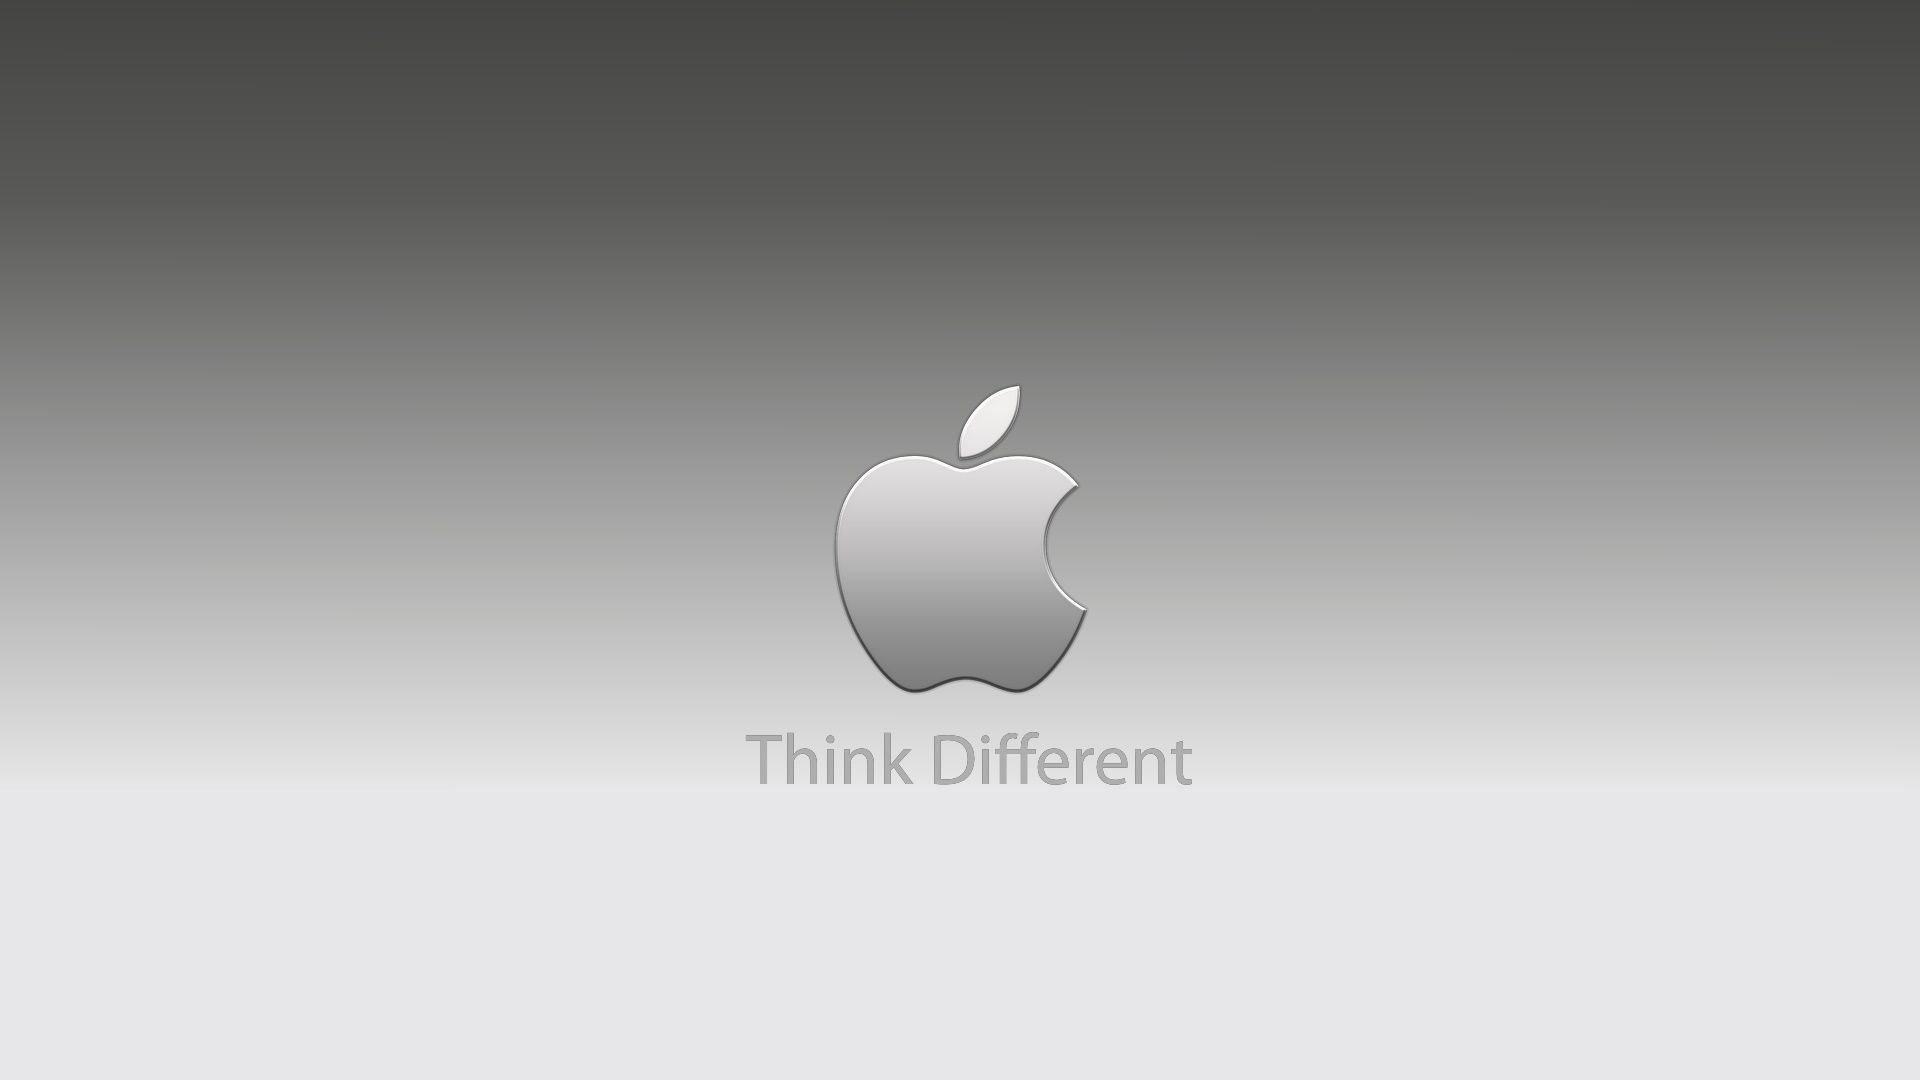 Think Different Free Apple Wallpaper Think Different X Think Different Apple Wallpapers  Wallpapers Adorable Wallpapers